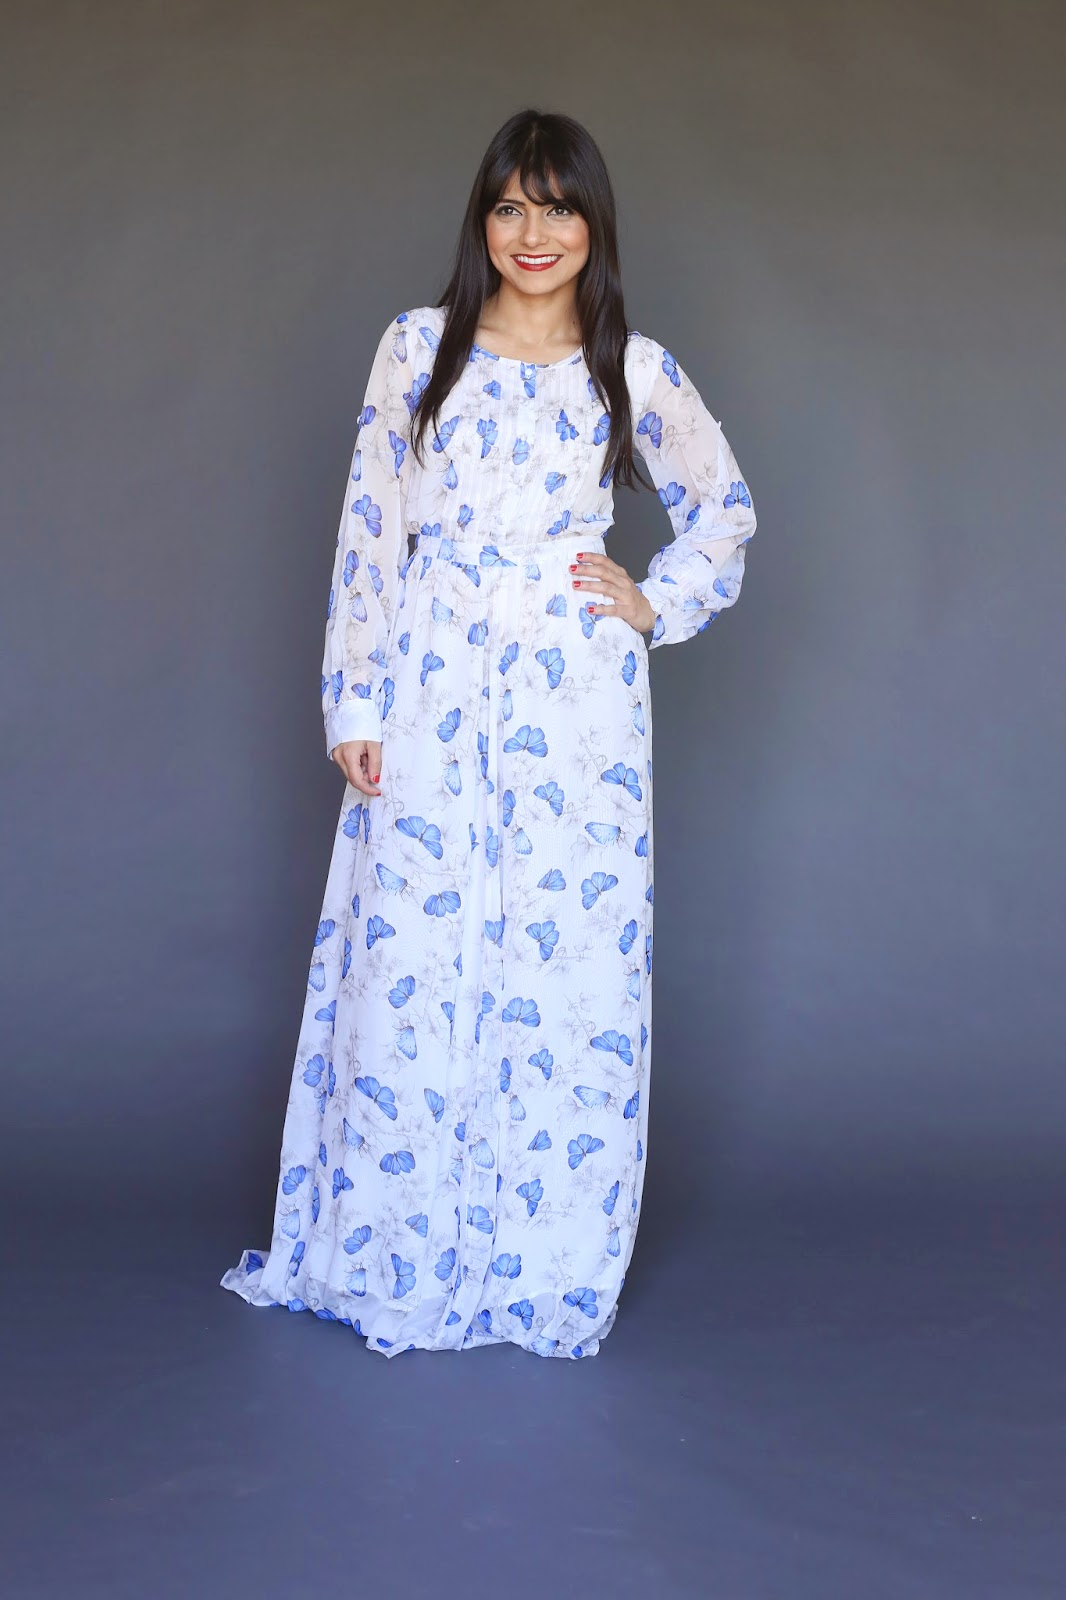 modest long sleeve maxi dress with all over butterfly print wedding guest beautiful dress hijab tznius fashion style Mode-sty